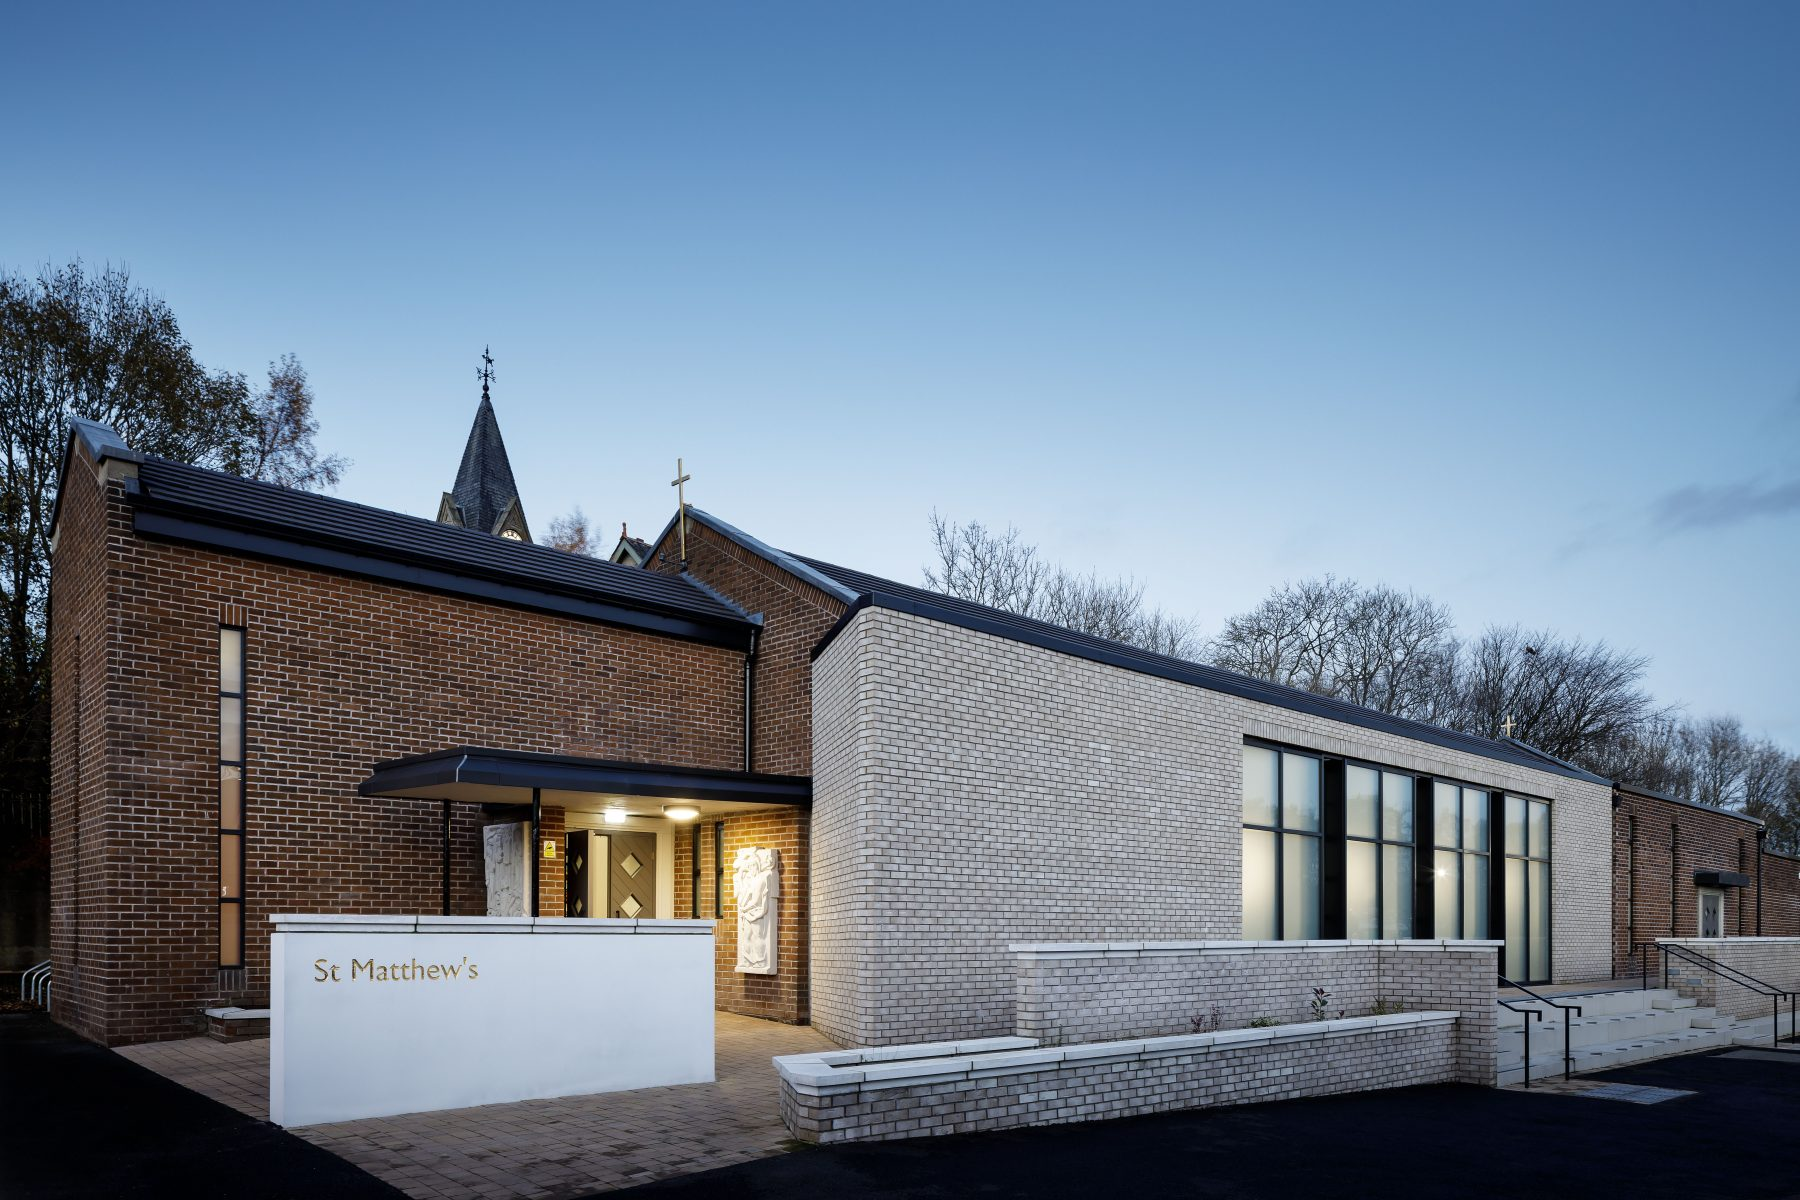 External view of the new extension